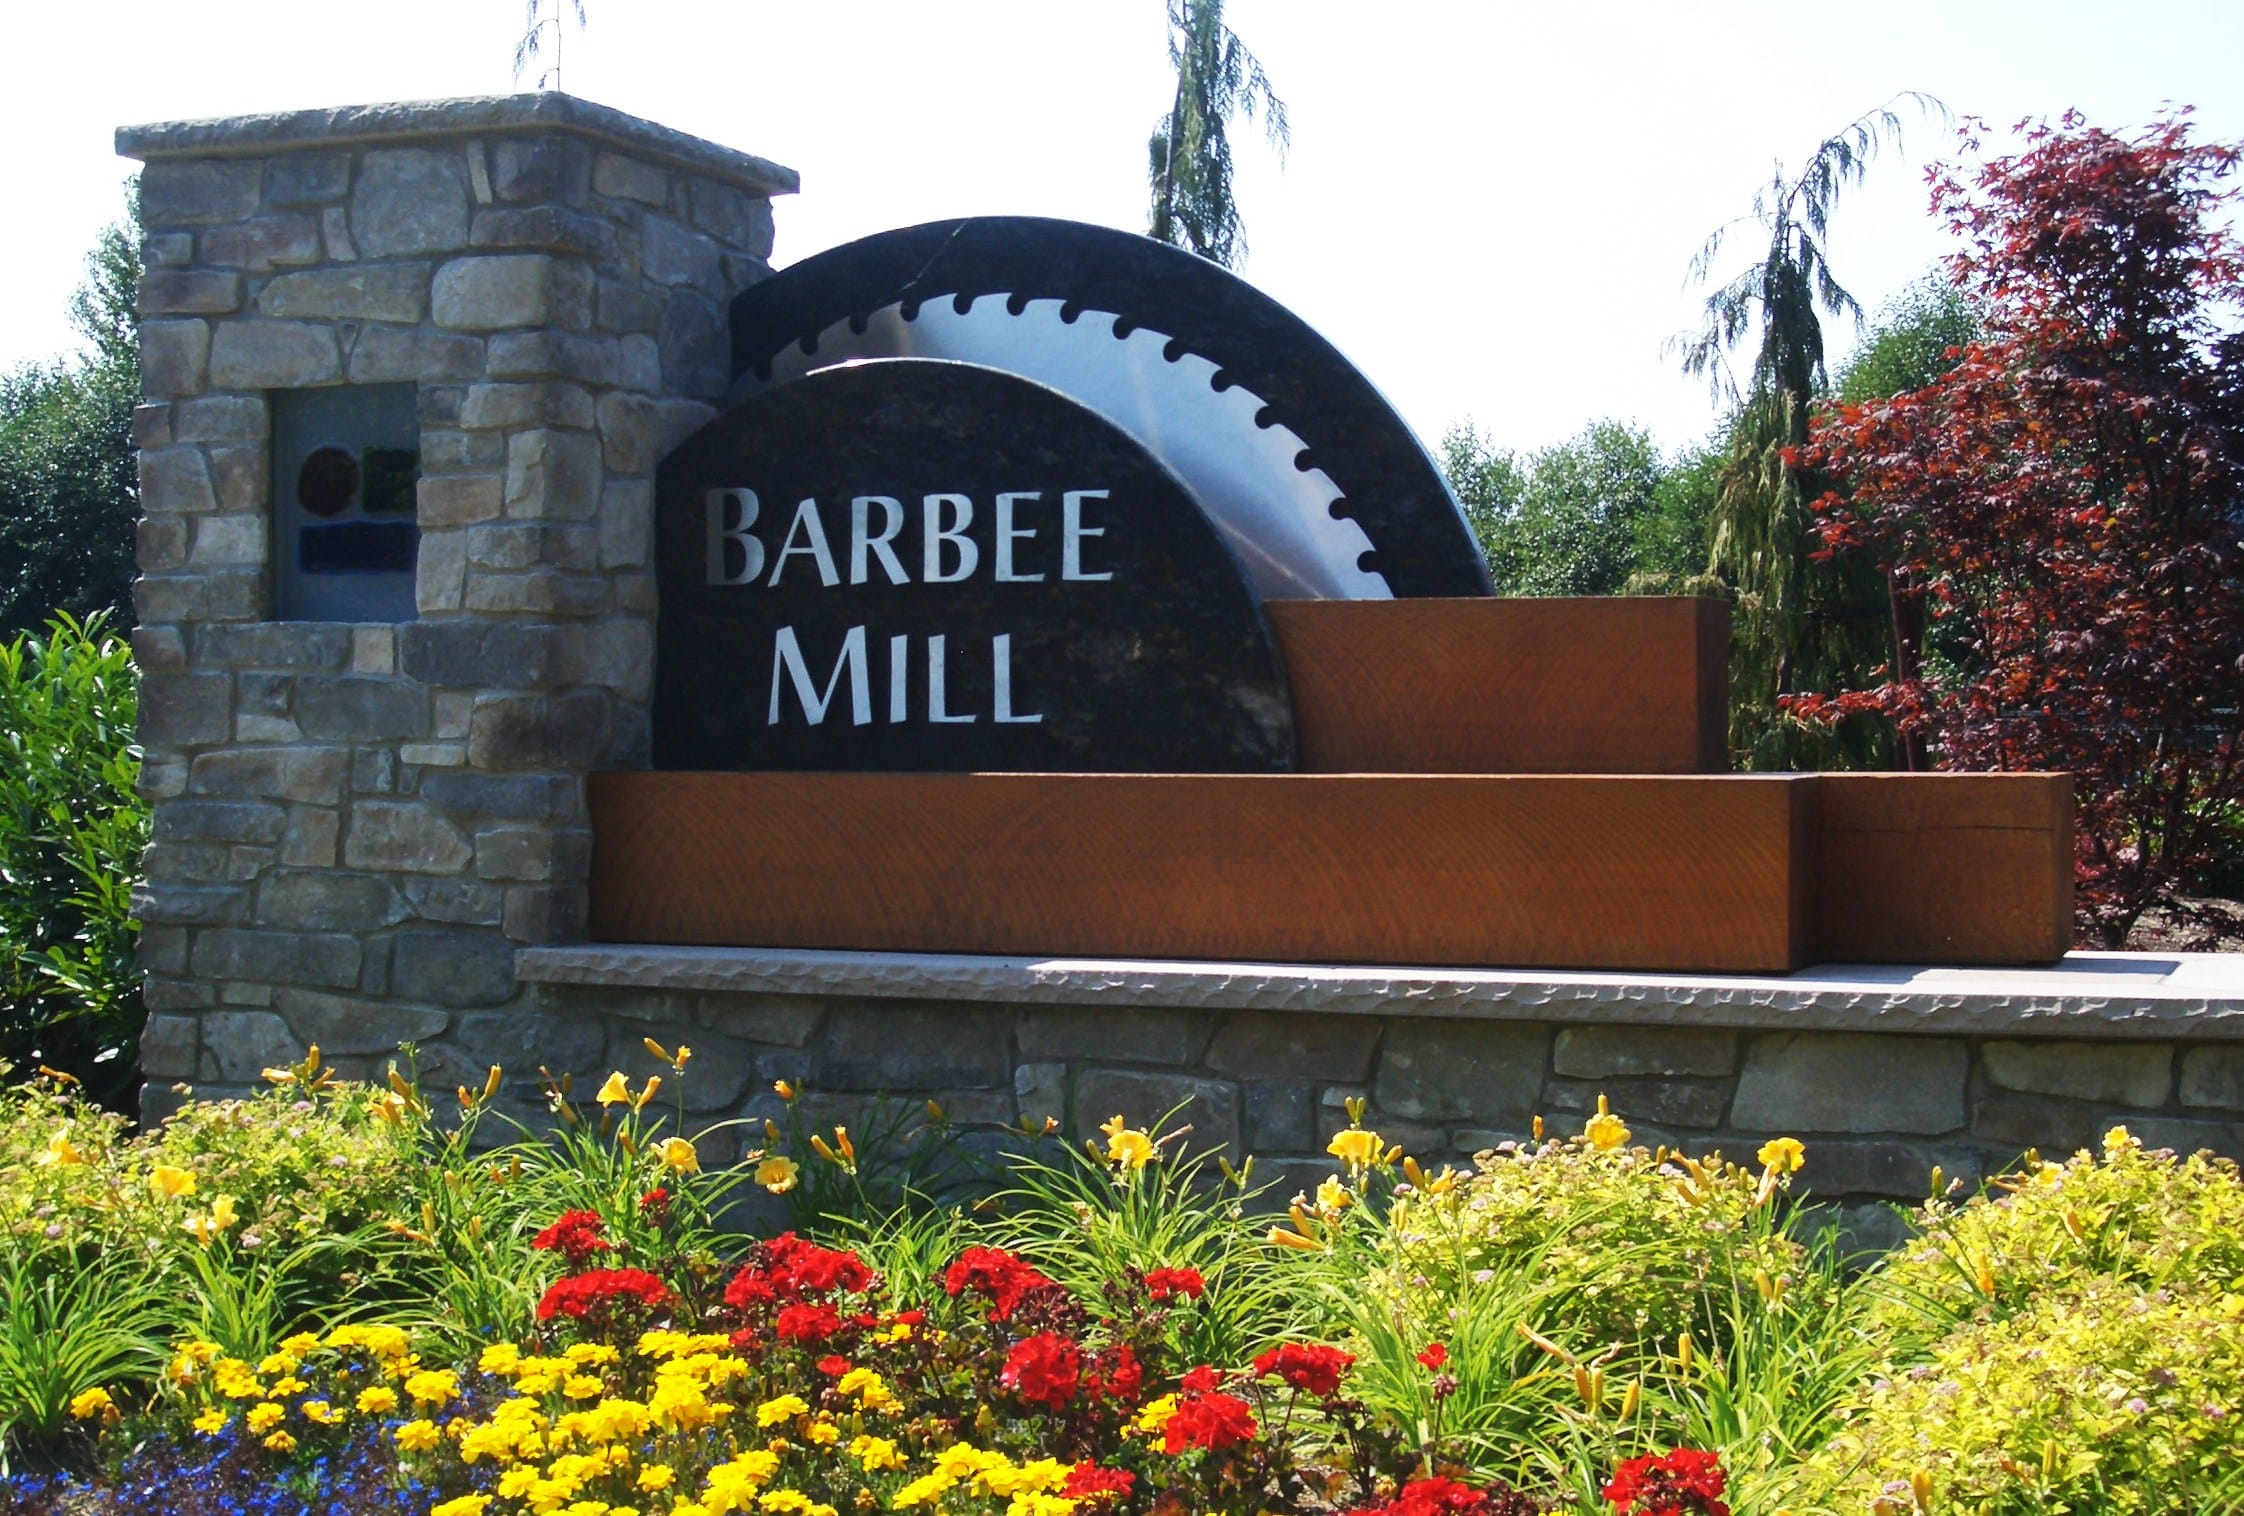 Barbee Mill Monument